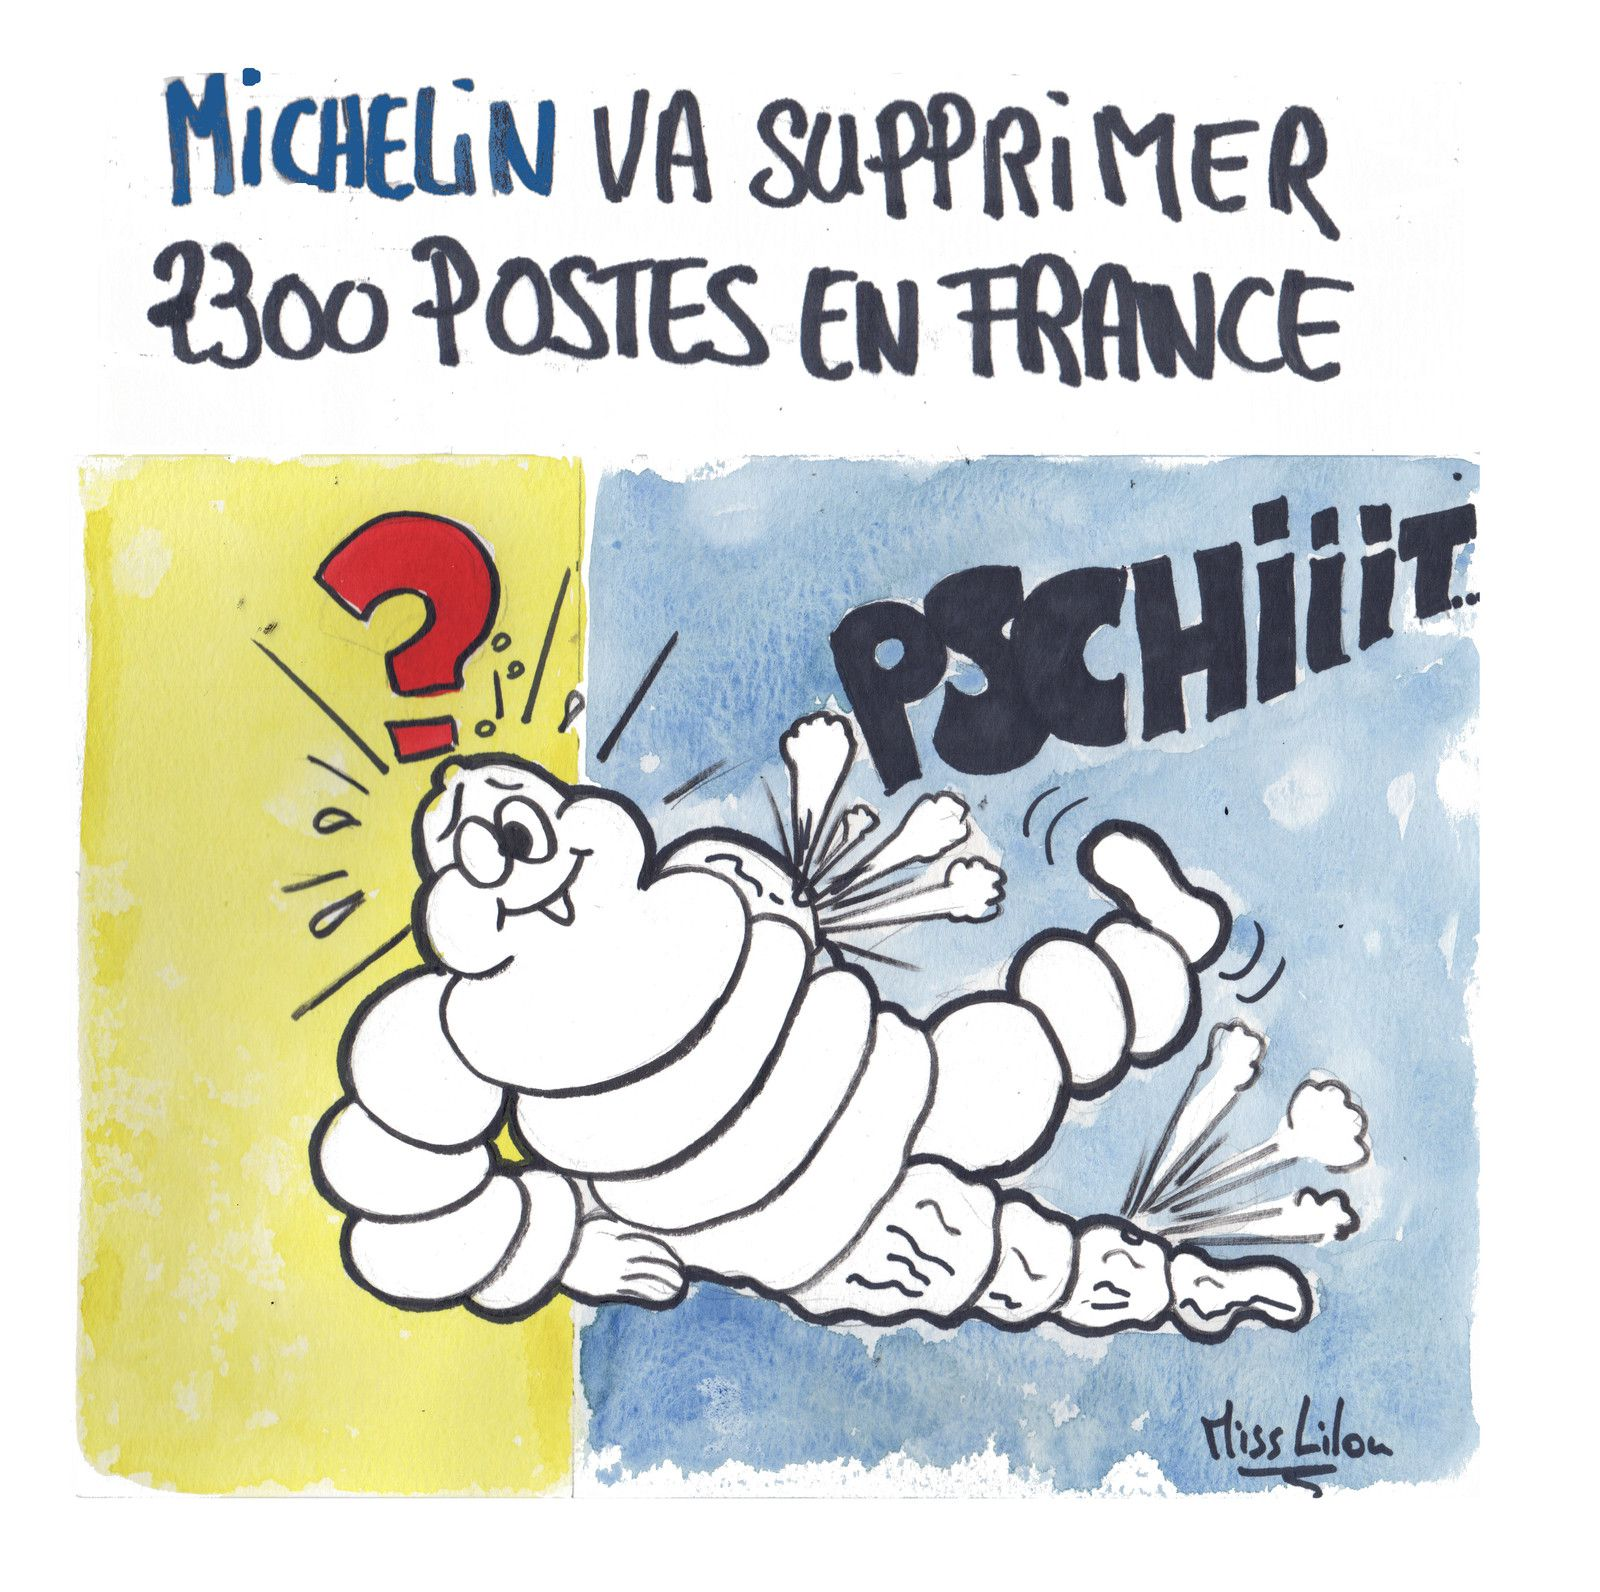 """Michelin va supprimer 2300 postes en France"""